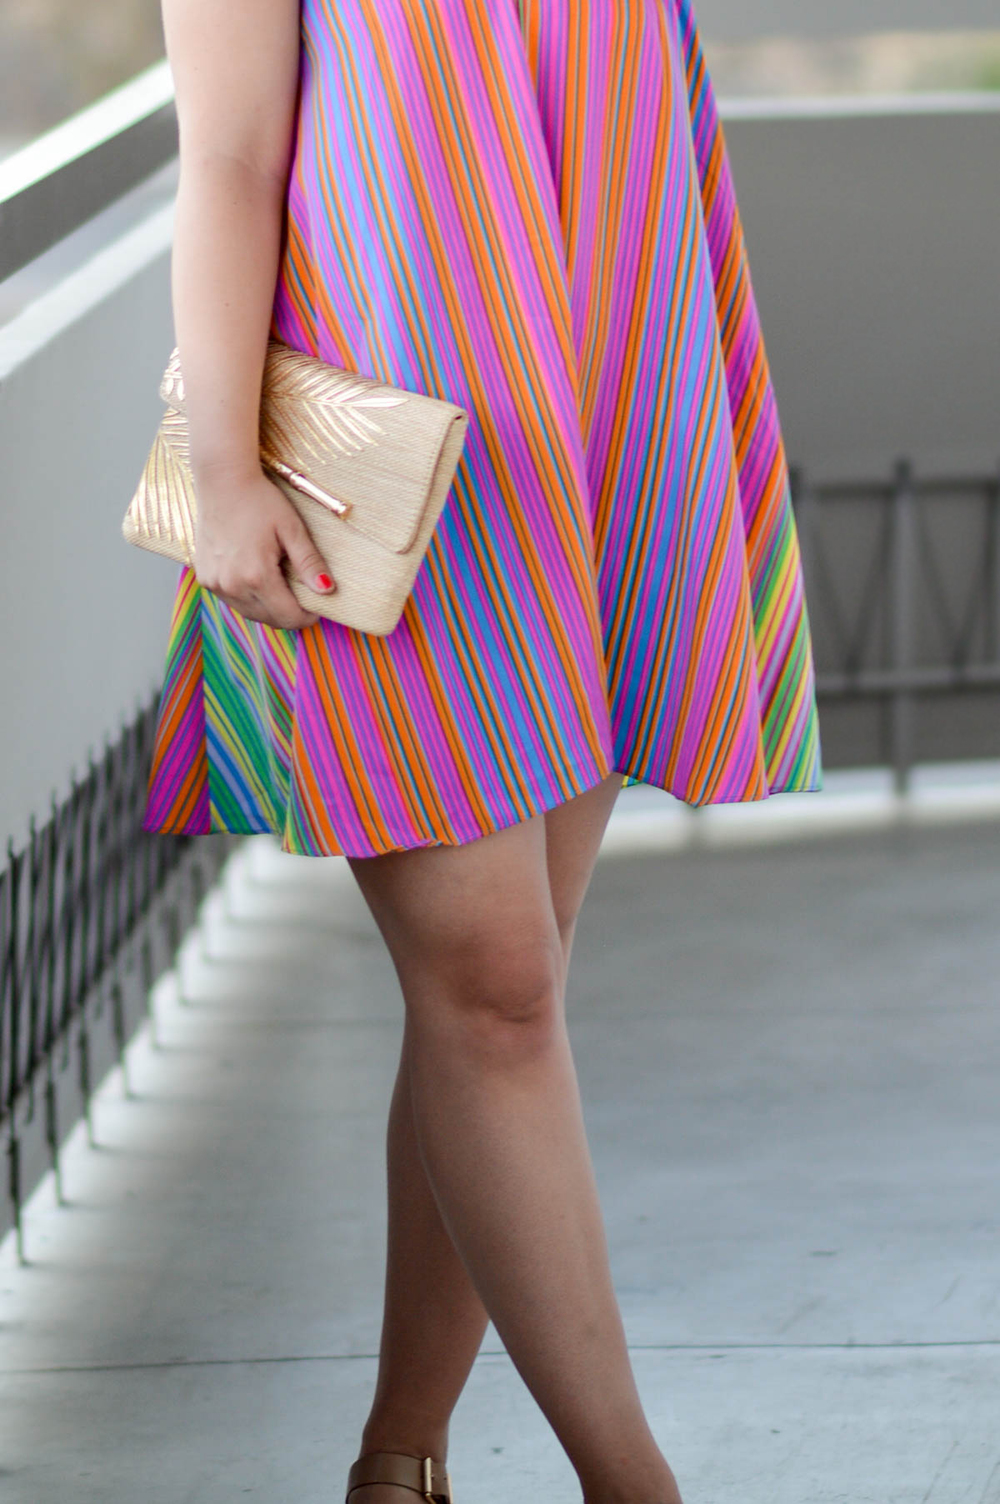 Striped Colorful Summer Dress in Palm Springs via. www.birdieshoots.com